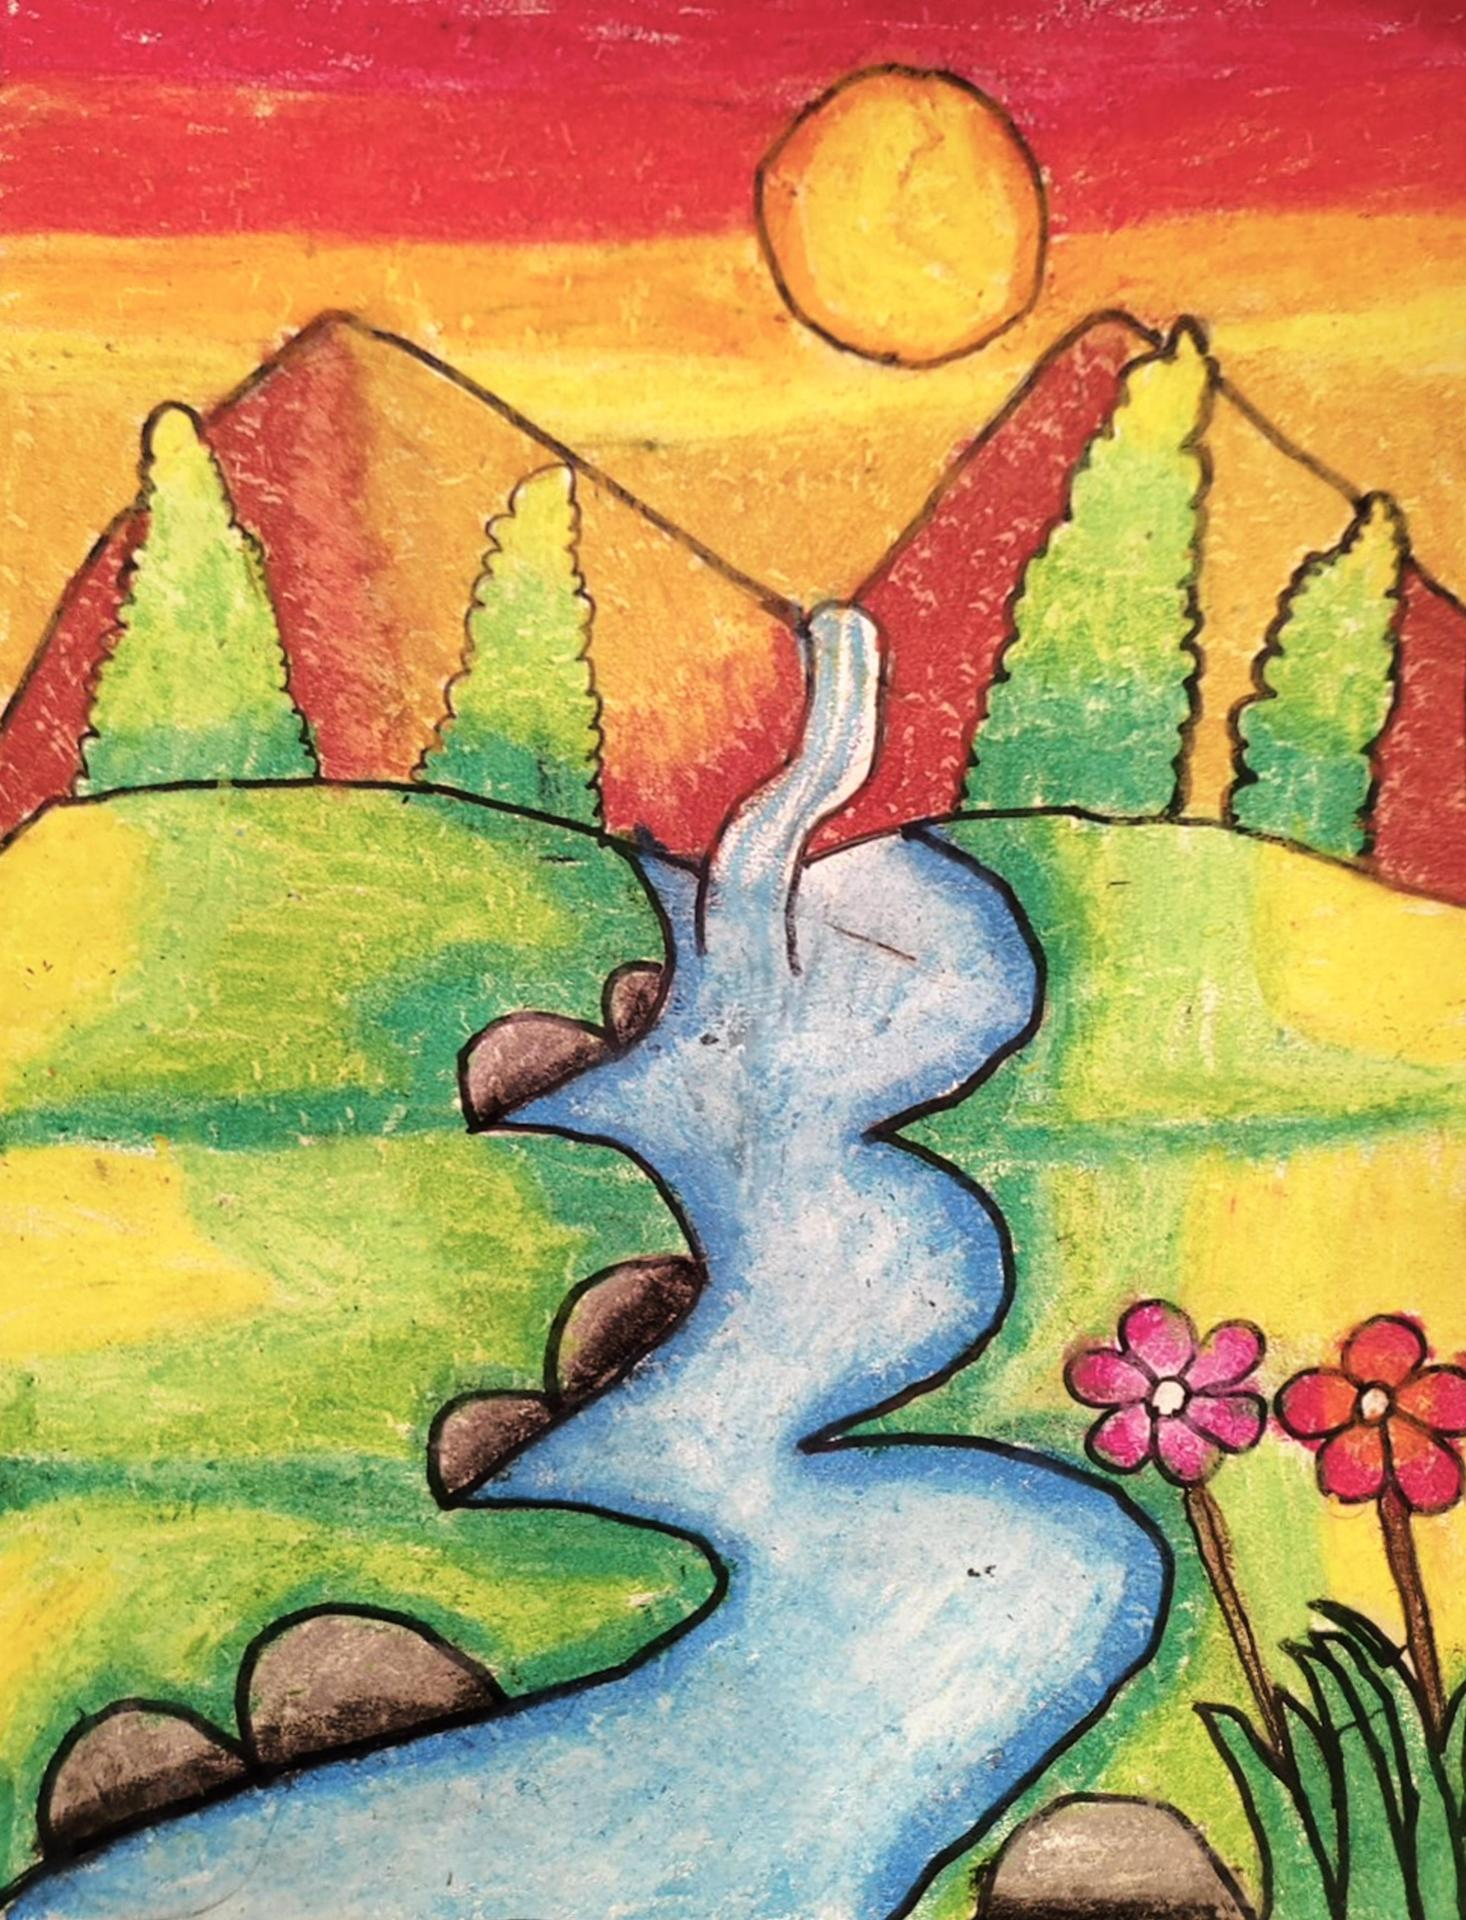 An elementary school student's brightly colorful landscape drawing of mountains, flowers, and a stream